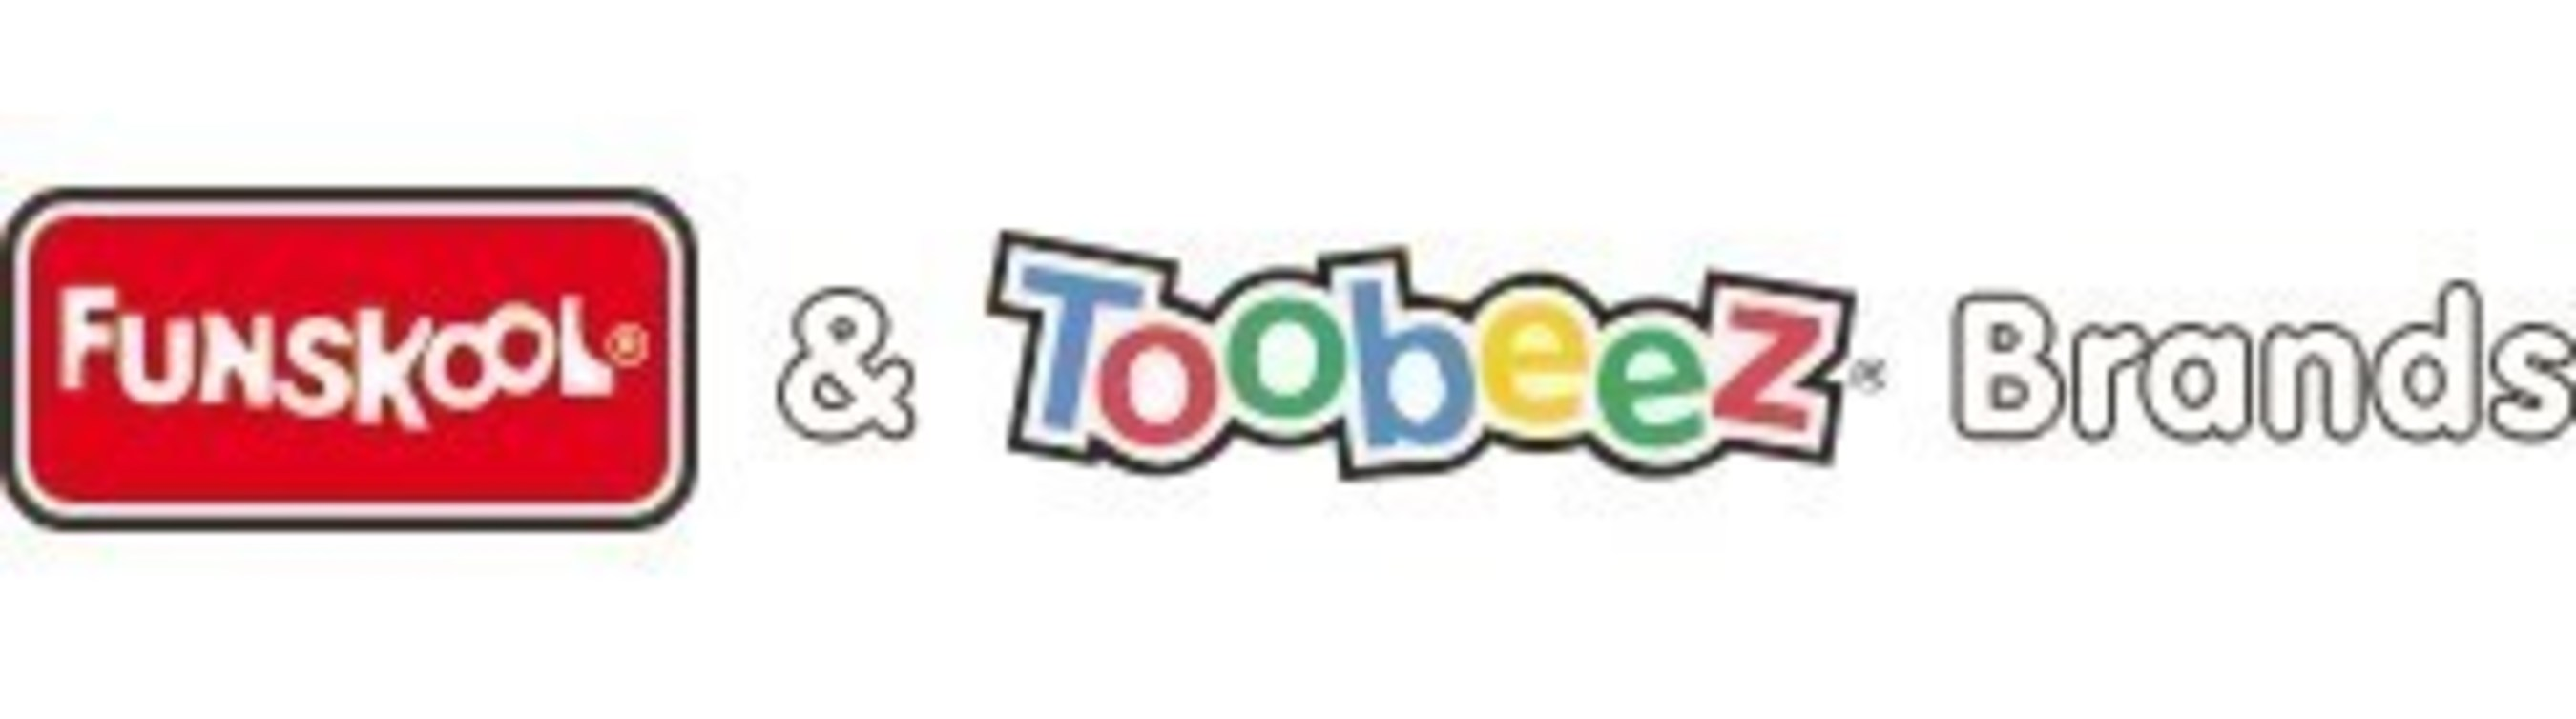 Open Ended Play Lines and Focus on STEM Leading Charge at NY Toy Fair for Funskool® and TOOBEEZ®